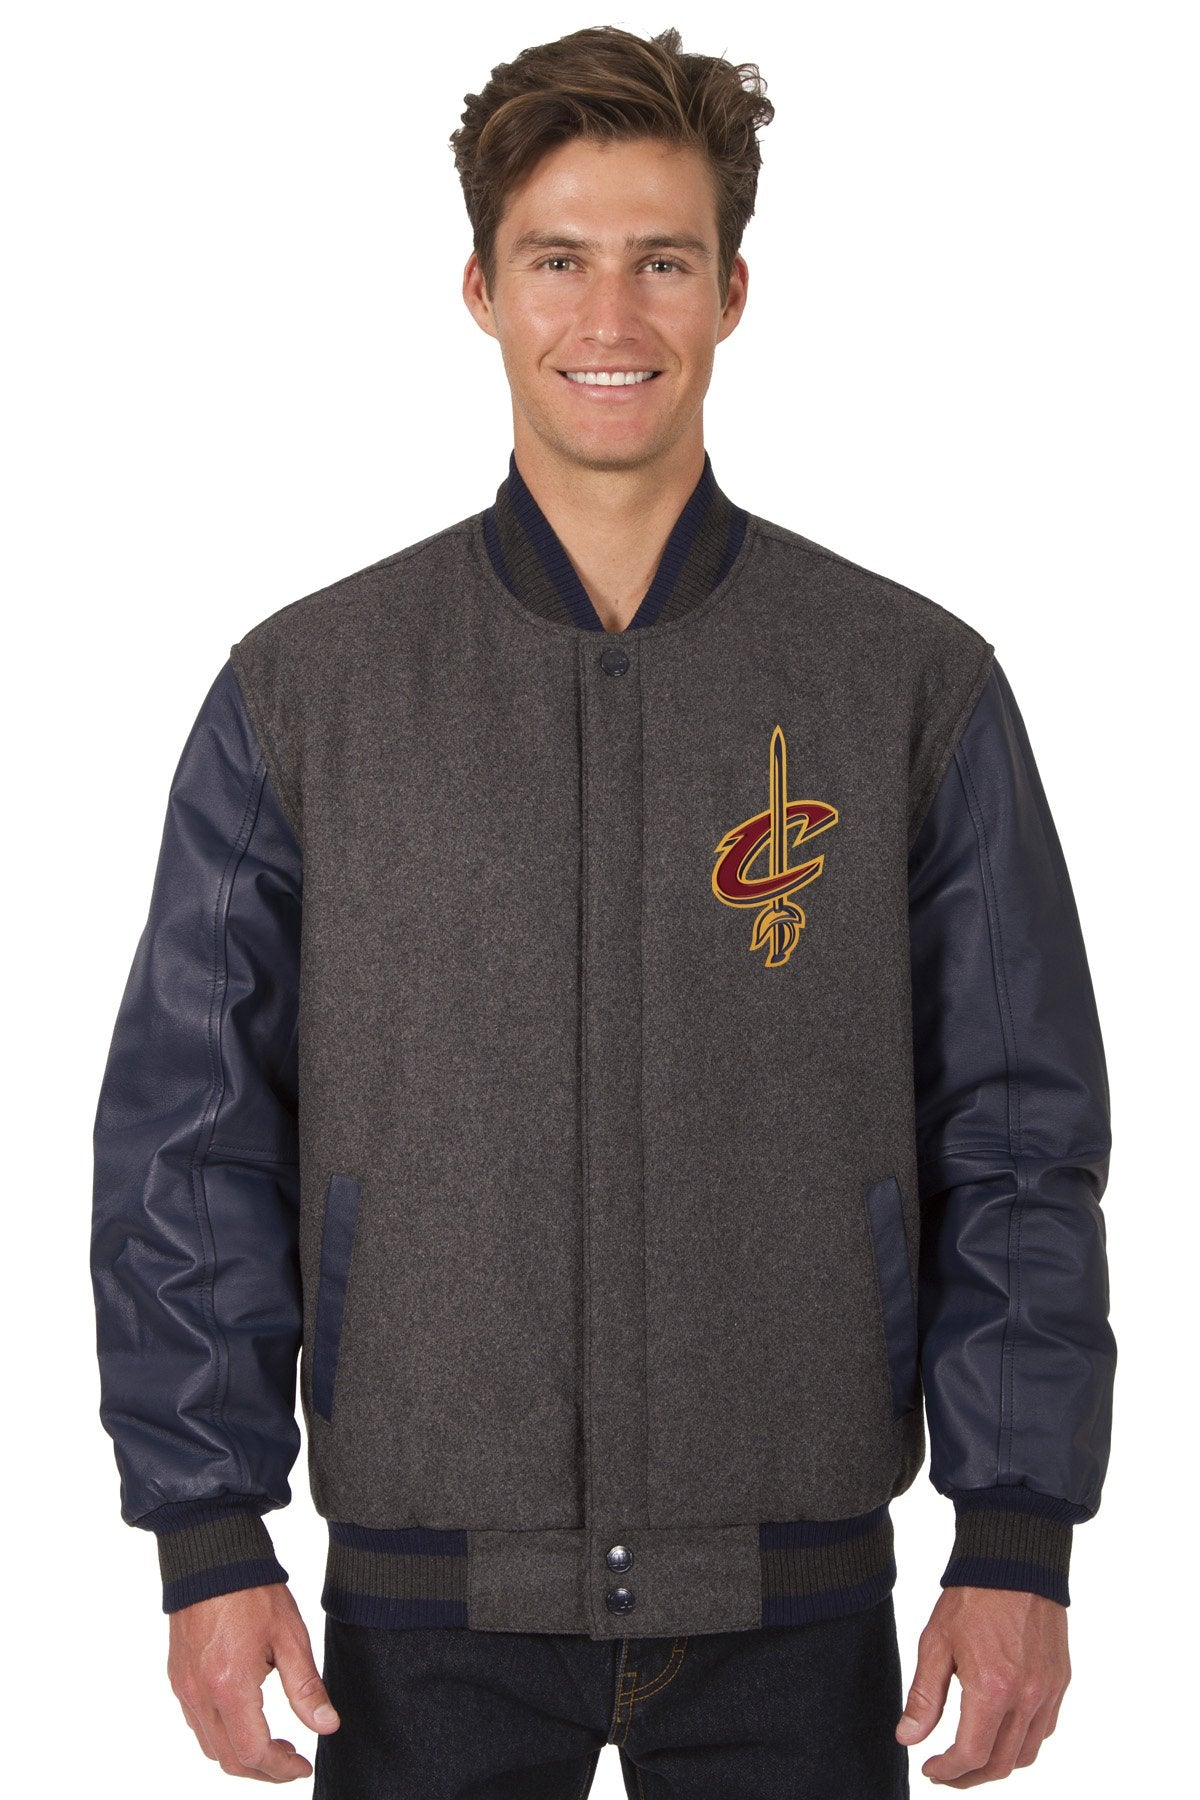 Cleveland Cavaliers Reversible Wool and Leather Jacket (Front and Back Logos)